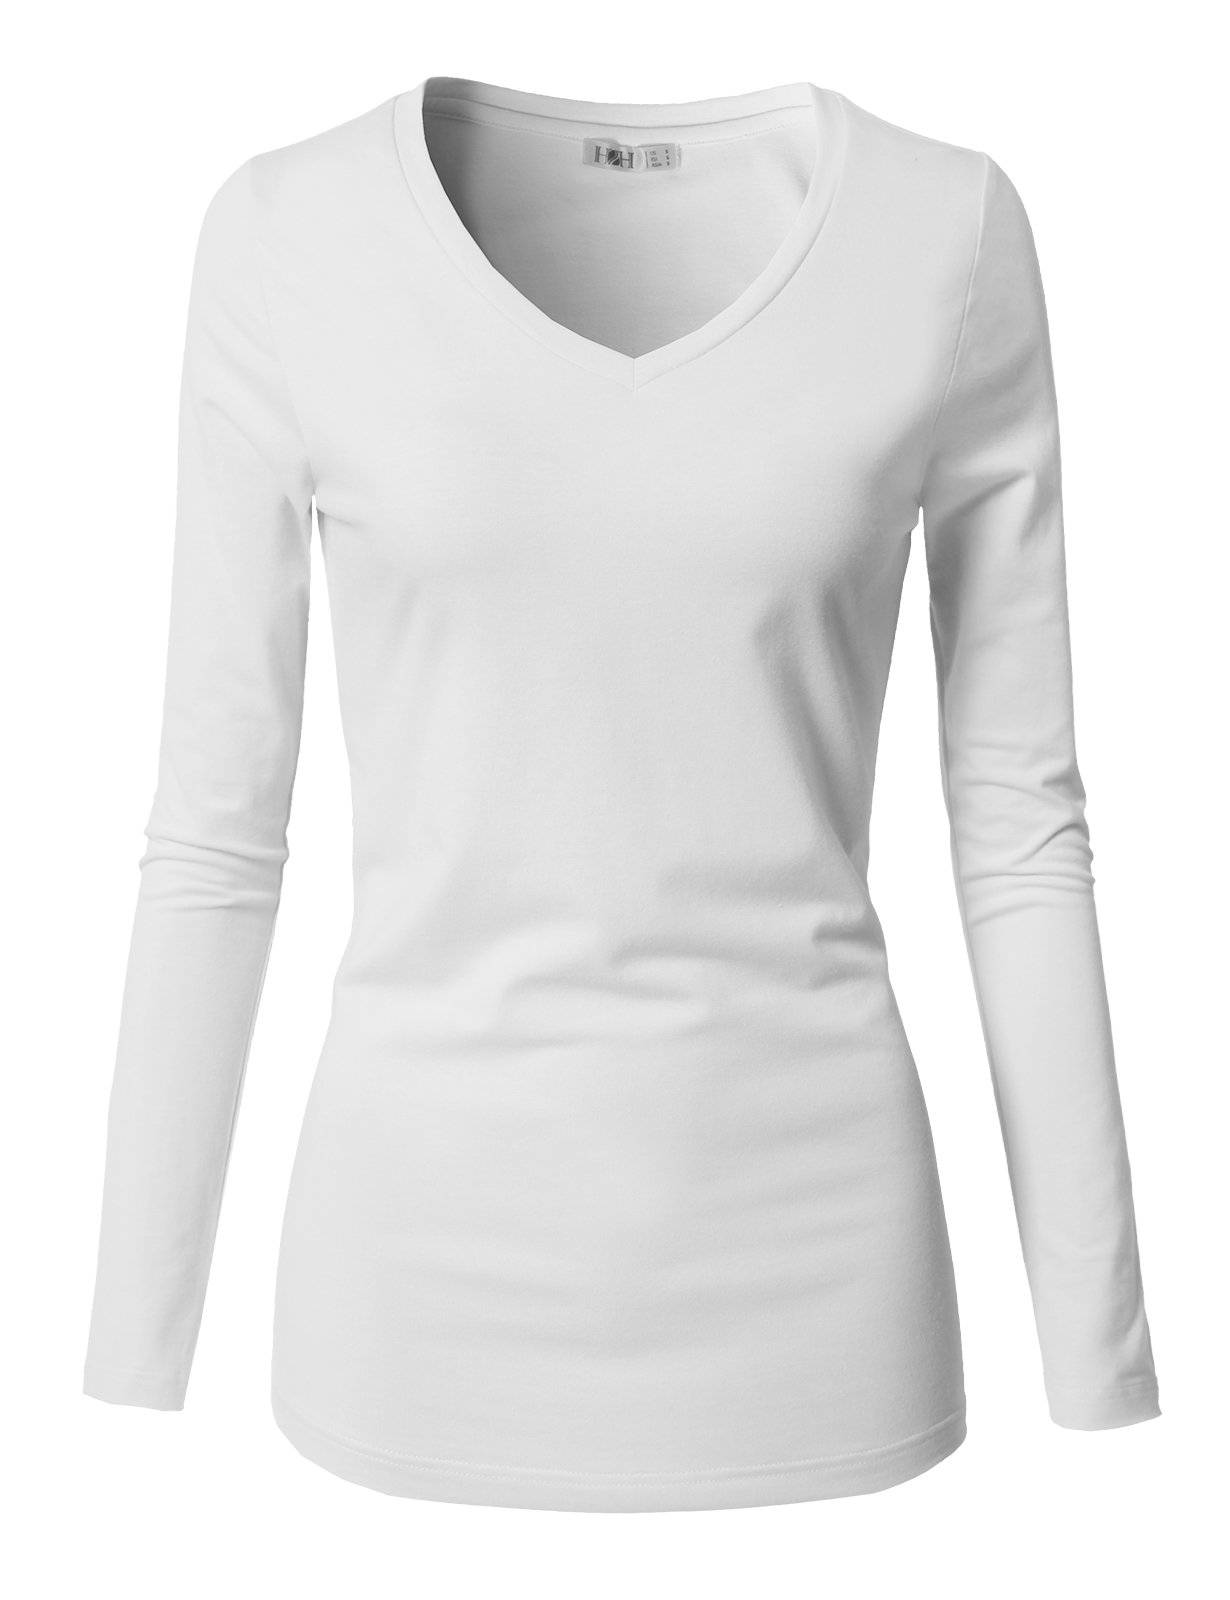 H2H Women's Basic Fitted Soft Lightweight 3/4 Sleeve Deep V Neck T Shirt Tee White US L/Asia L (CWTTL0250)